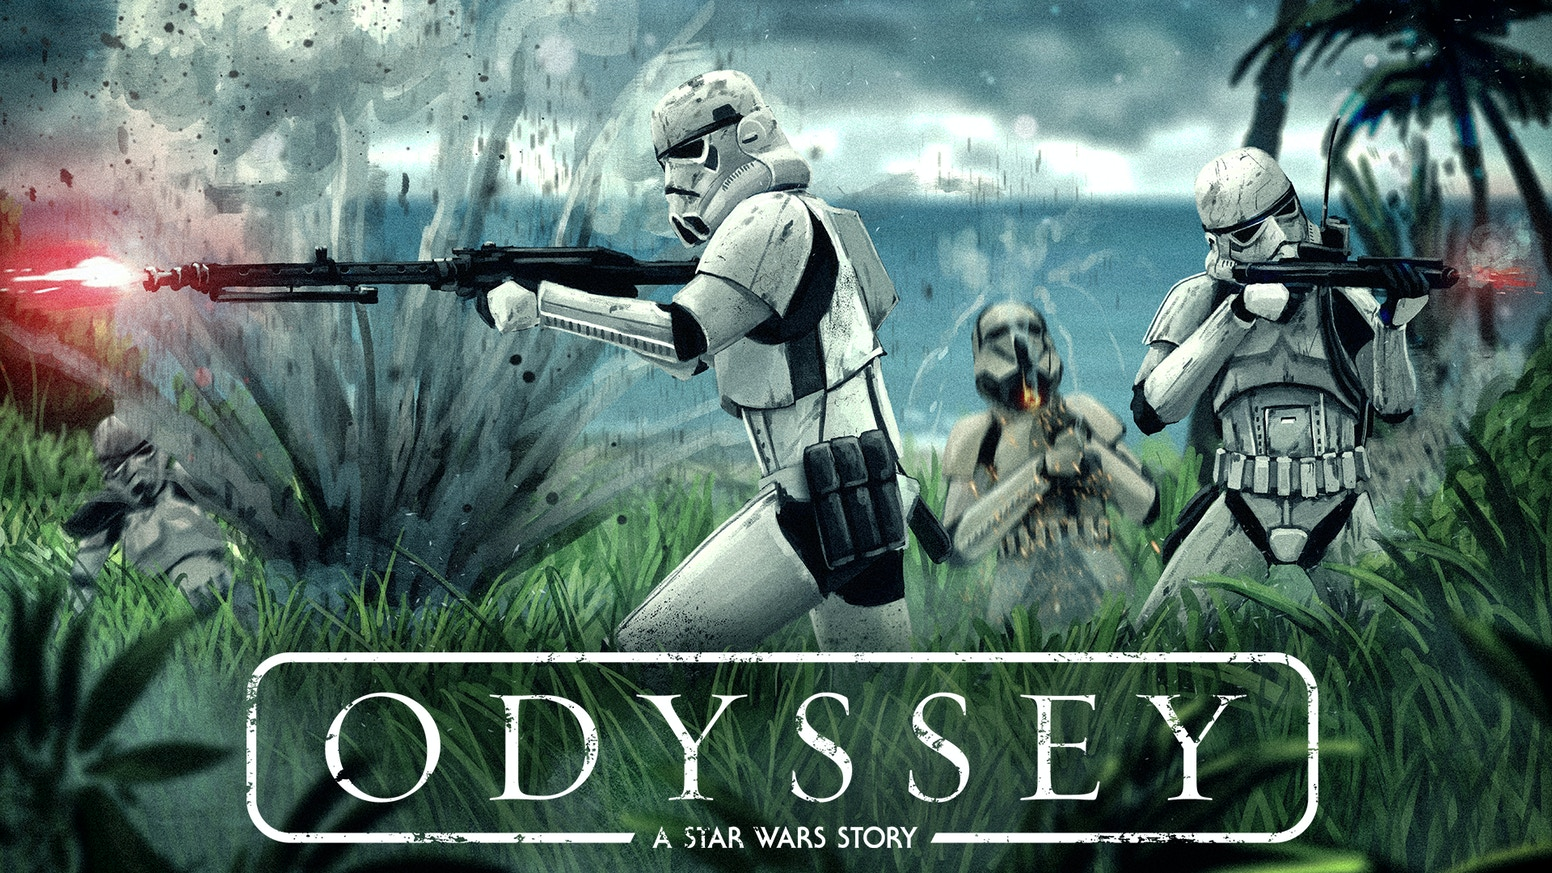 A team of film students in Georgia is raising money for Odyssey; A fan film about a rebel recon mission gone horribly wrong.